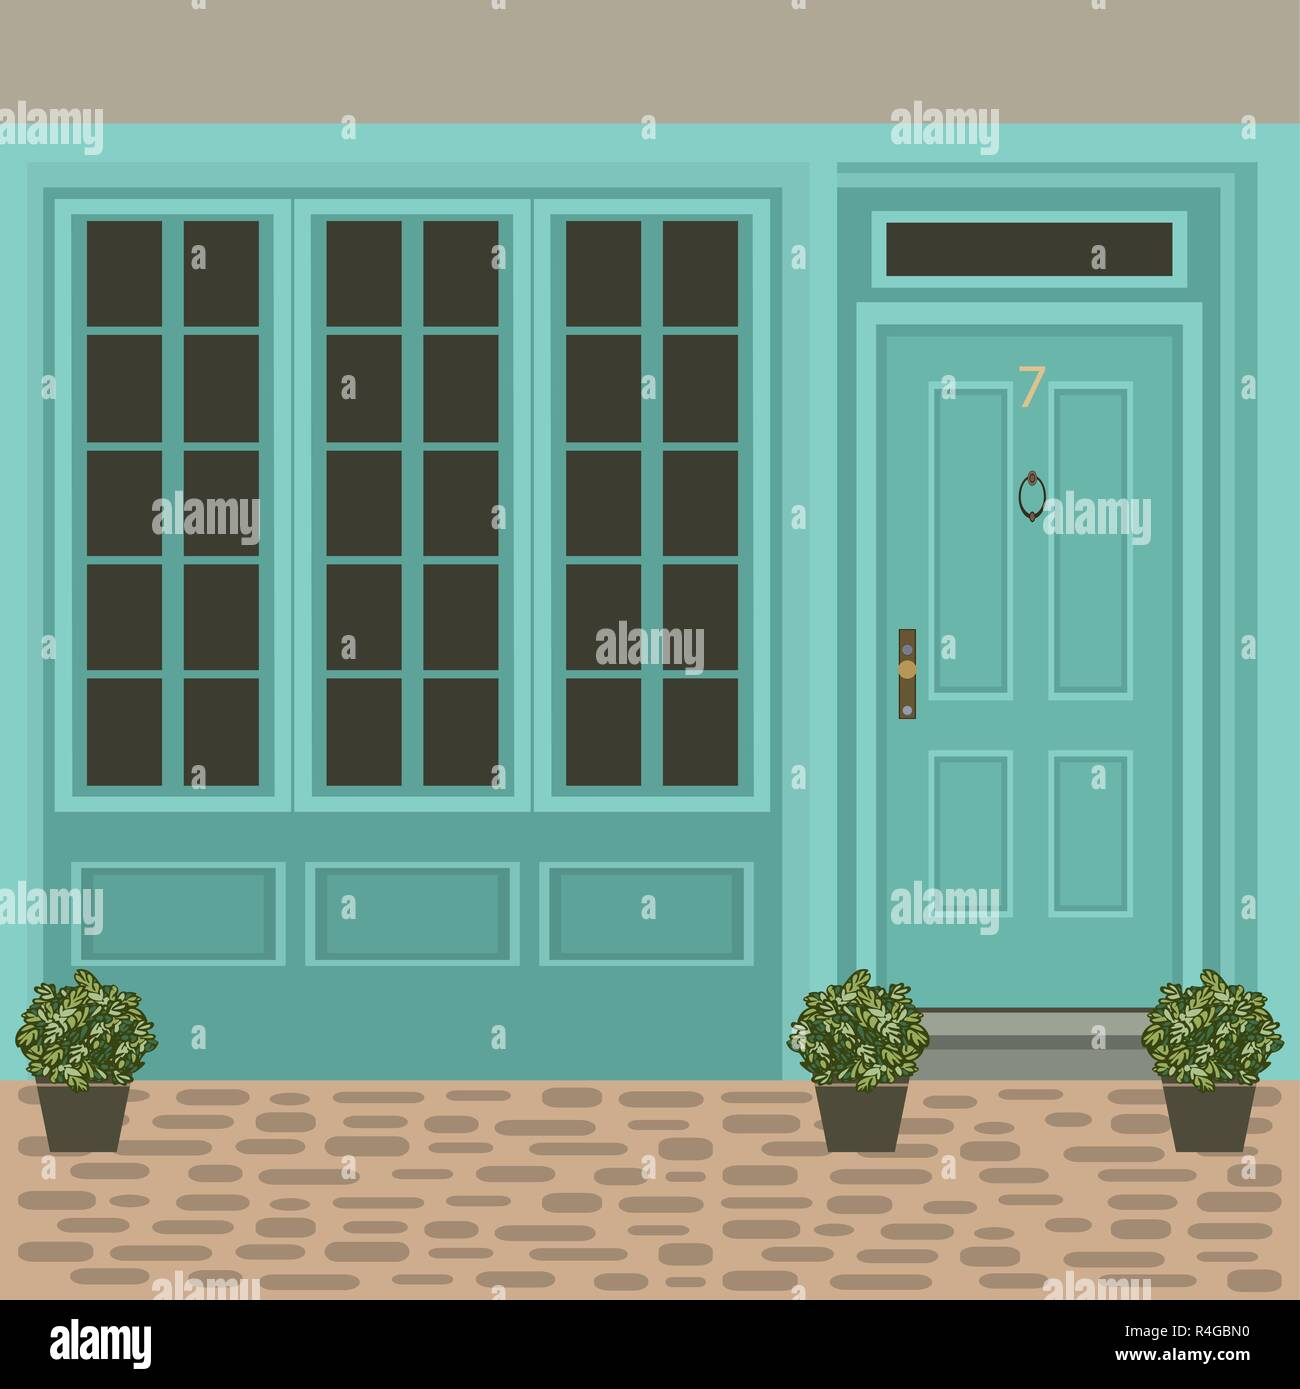 House Door Front With Window Steps And Plants Building Entry Facade Exterior Entrance Design Illustration Vector In Flat Style Stock Vector Image Art Alamy,Architectural Design Phases Percentages